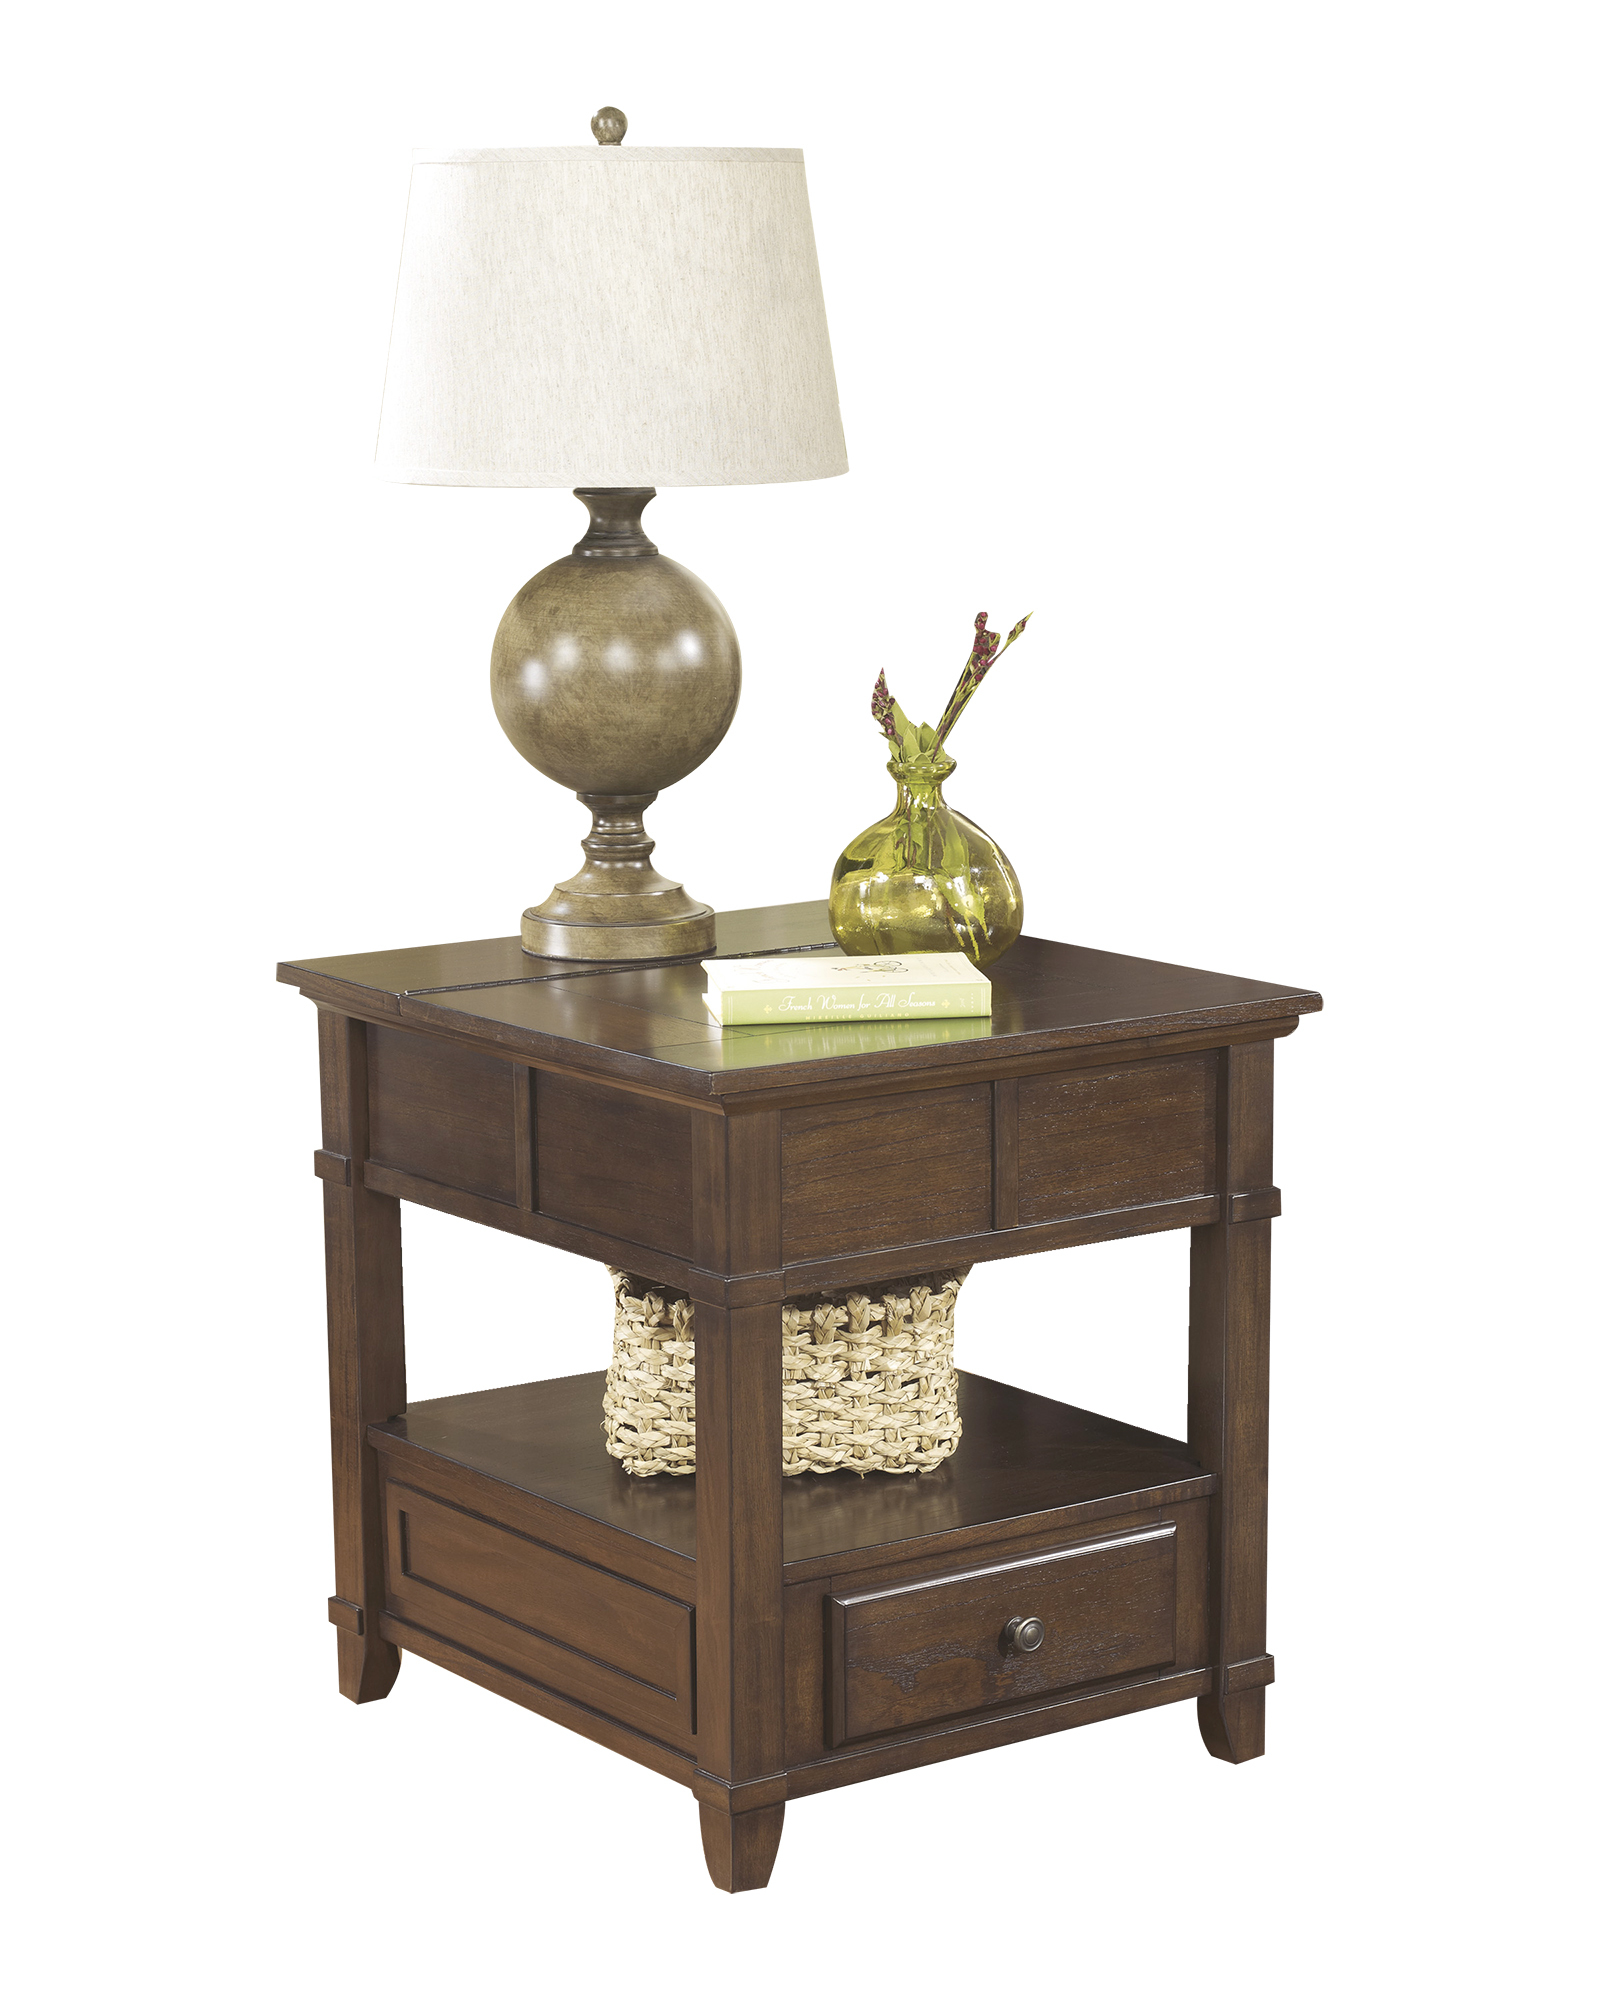 rectangle end table T845 3w1.jpg